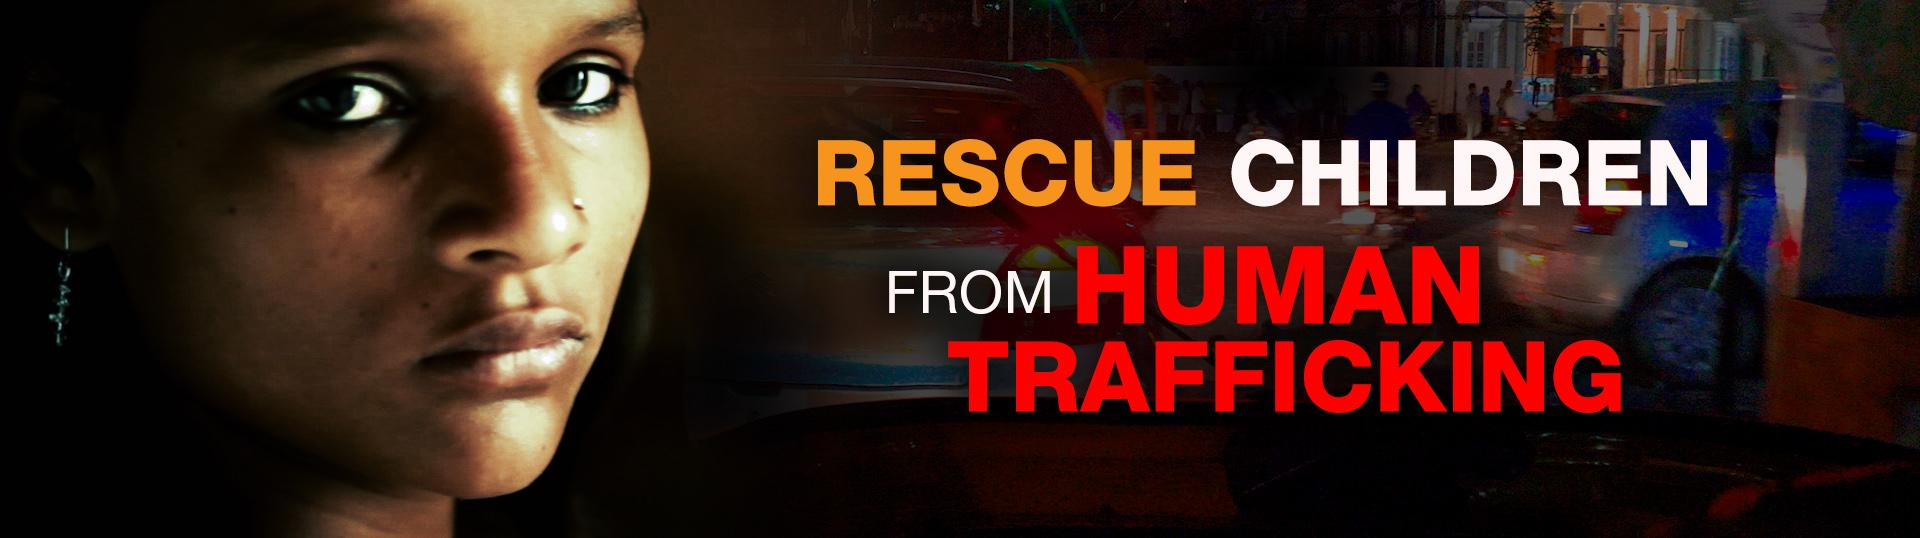 Rescue Children from Human Trafficking